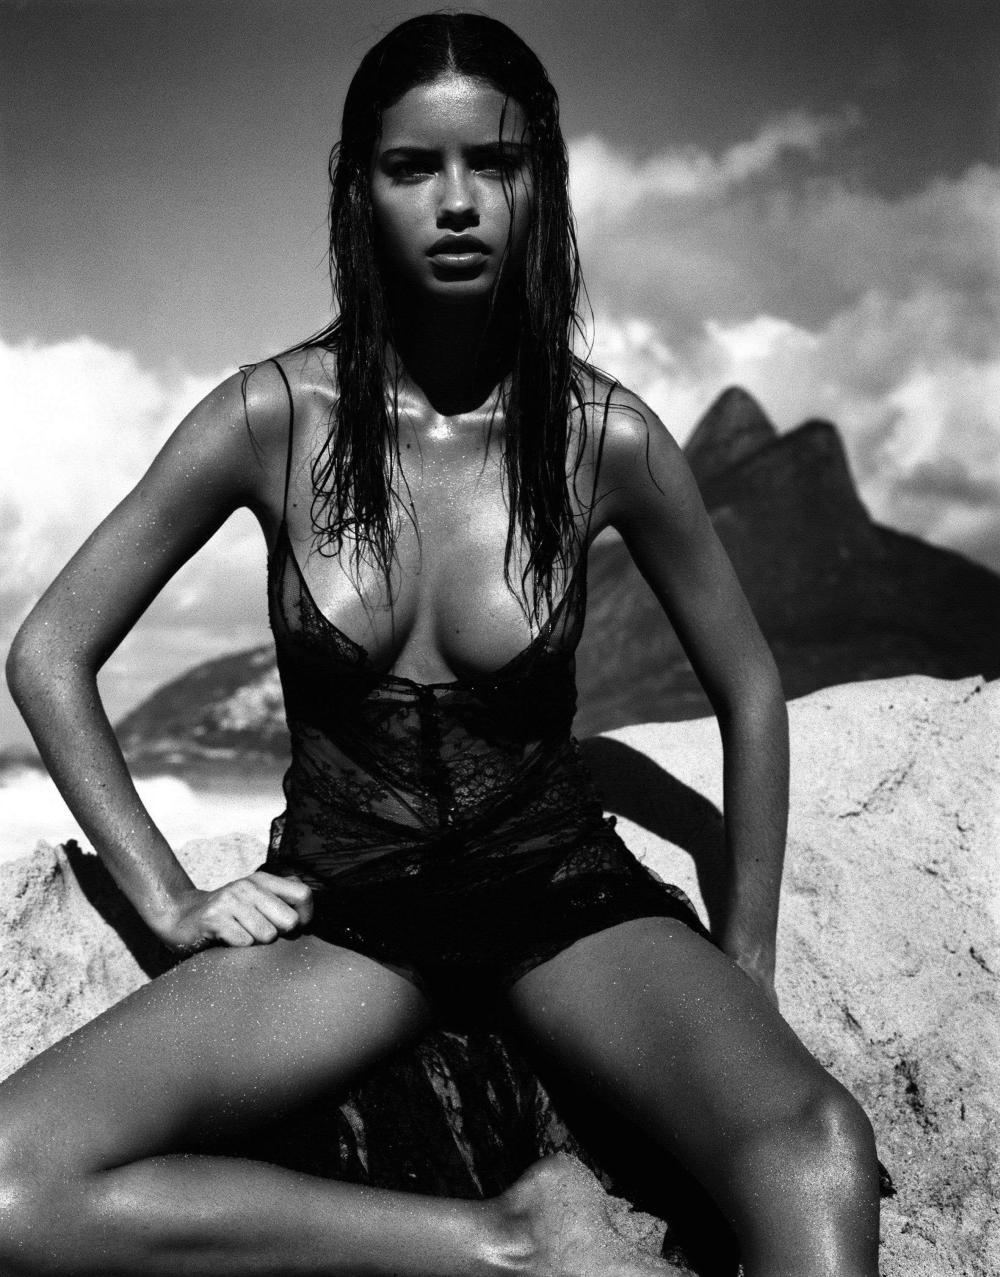 12-welcome-to-my-world-folkr-body-call-adriana-lima-by-patrick-demarchelier-for-pirelli-calendar-2005